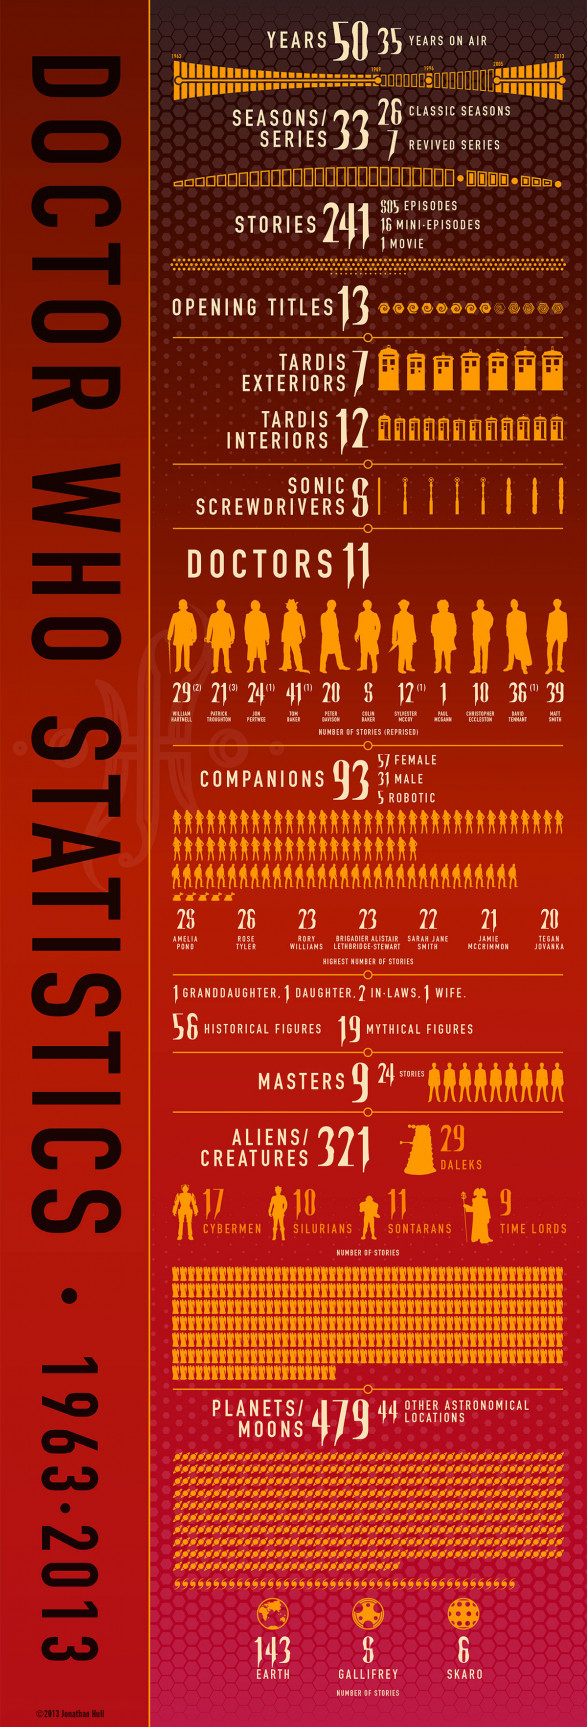 Doctor Who Statistics